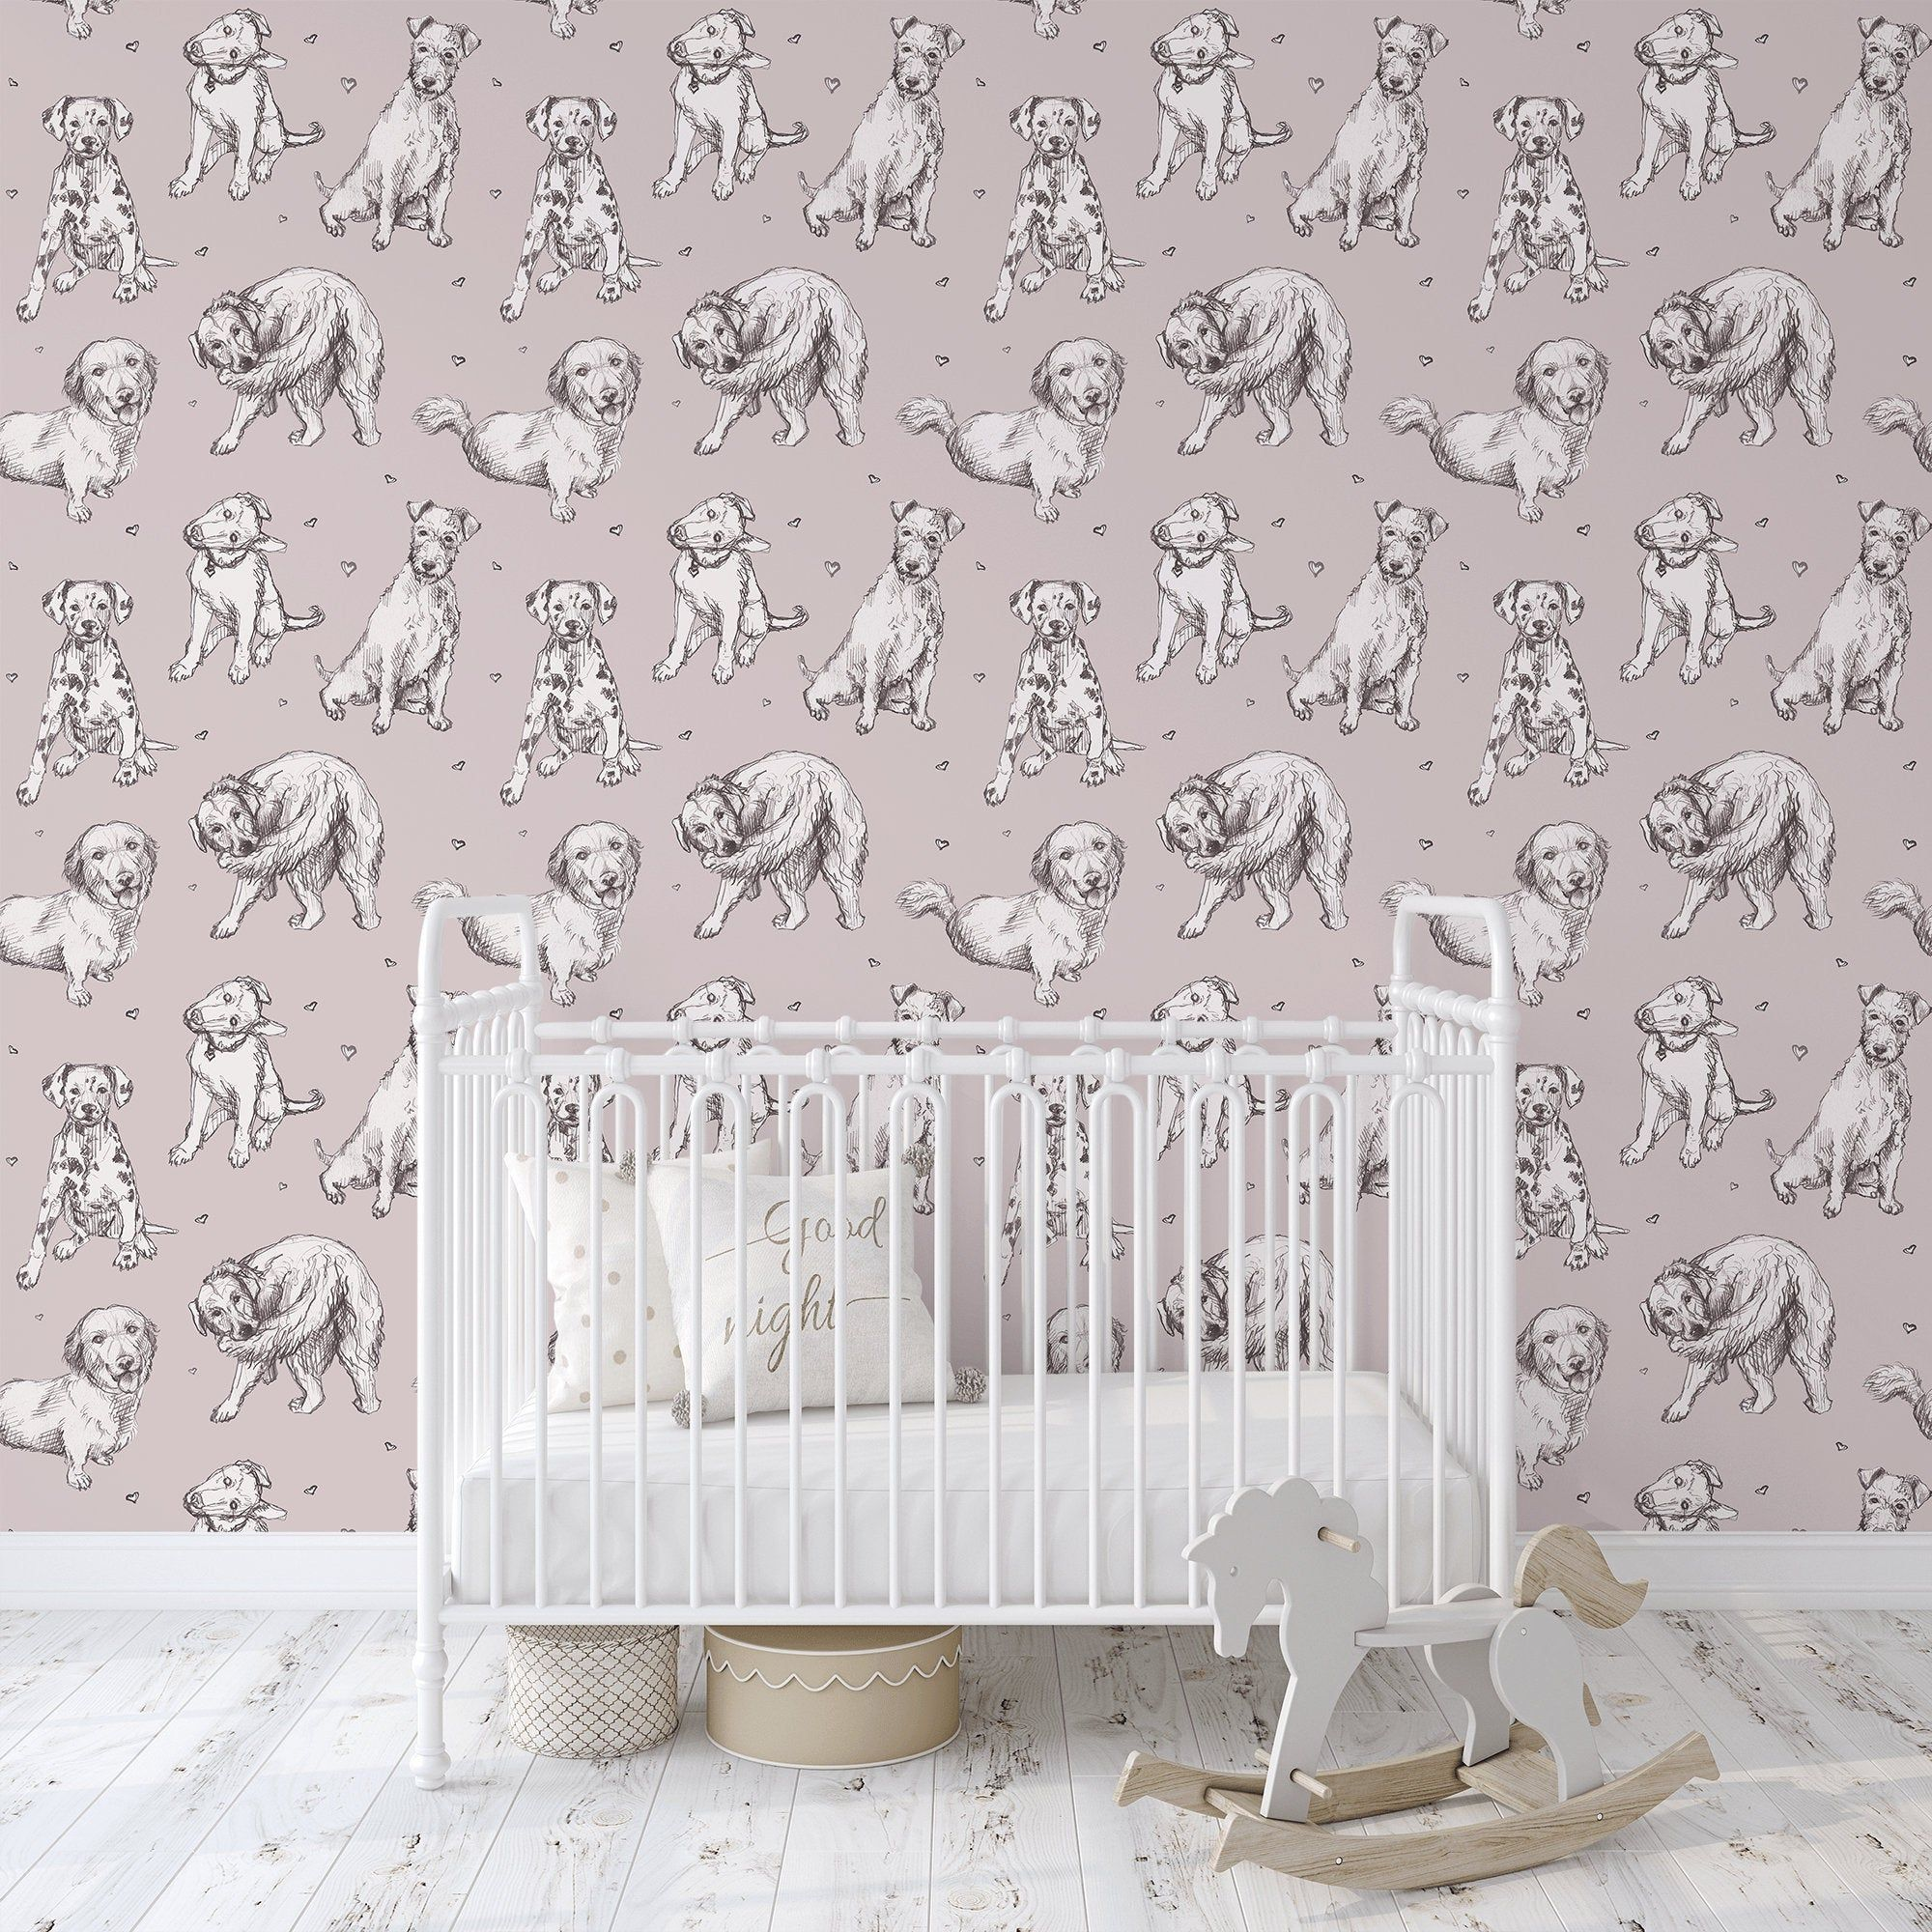 Nursery Wallpaper With Cute Dogs Peel And Stick Kids Etsy Nursery Wallpaper Kids Wallpaper Nursery Wall Stickers